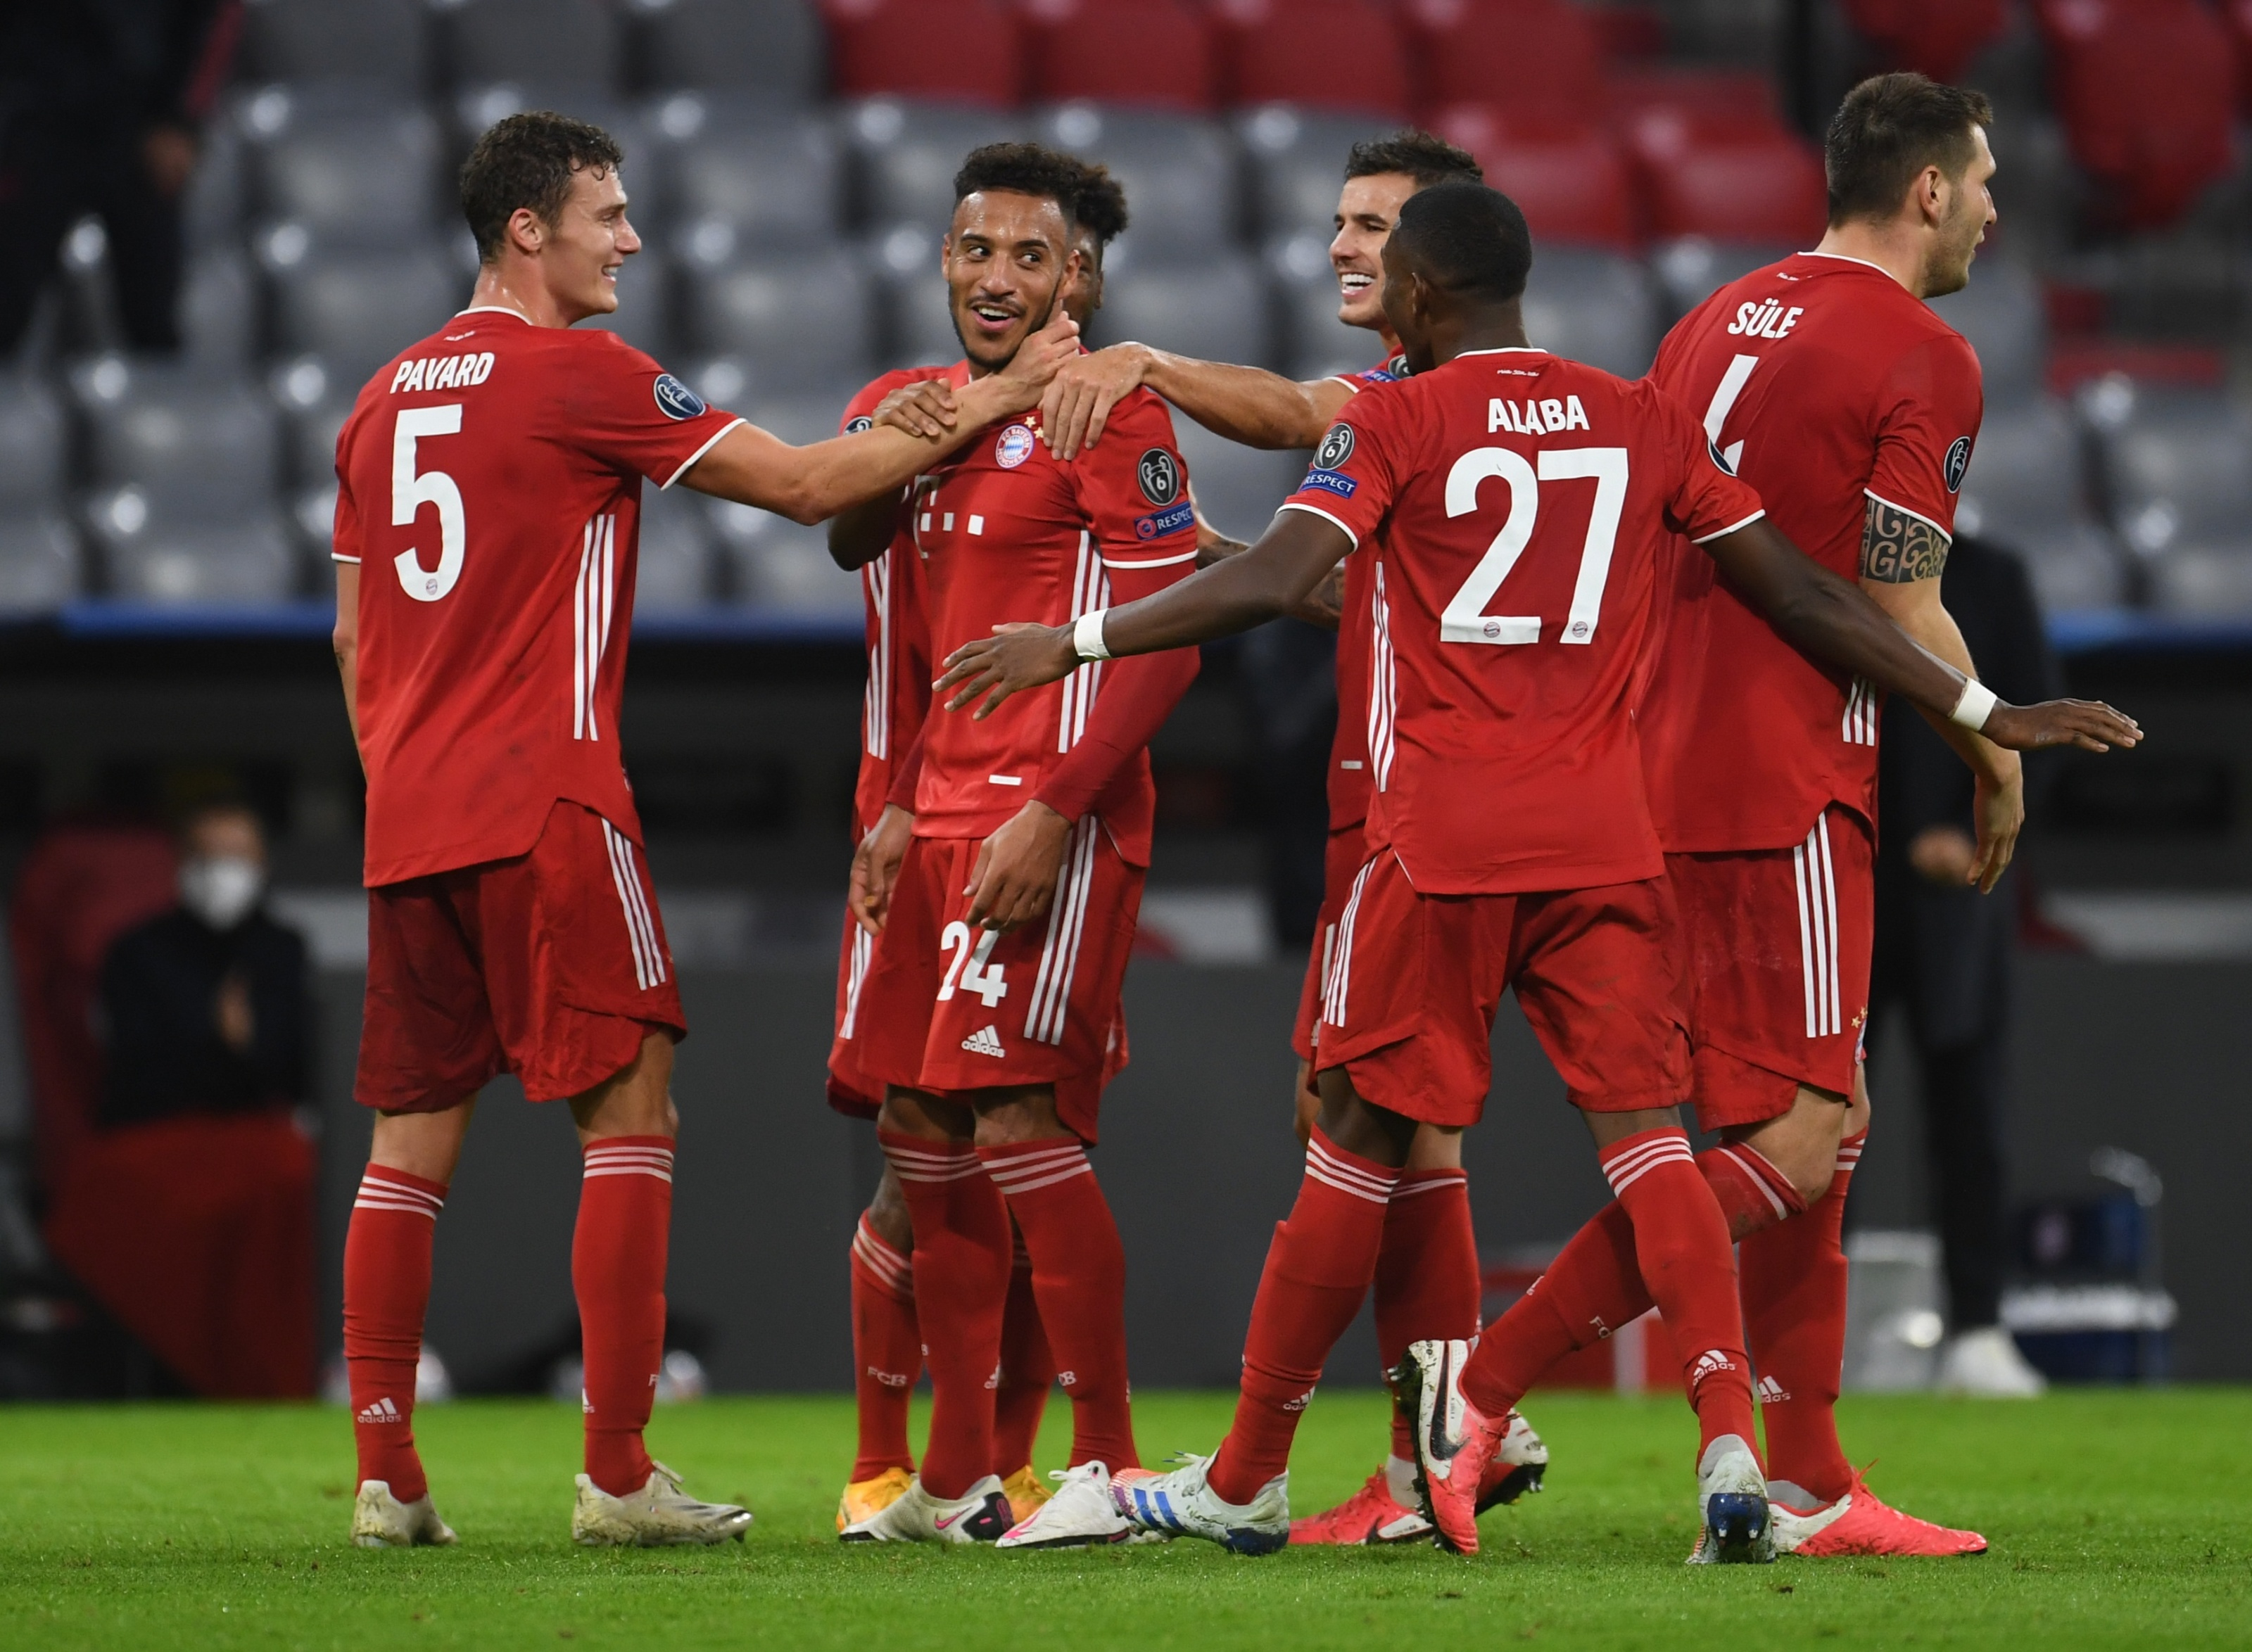 FC Bayern Munich cruise to a comfortable win against Atletico Madrid